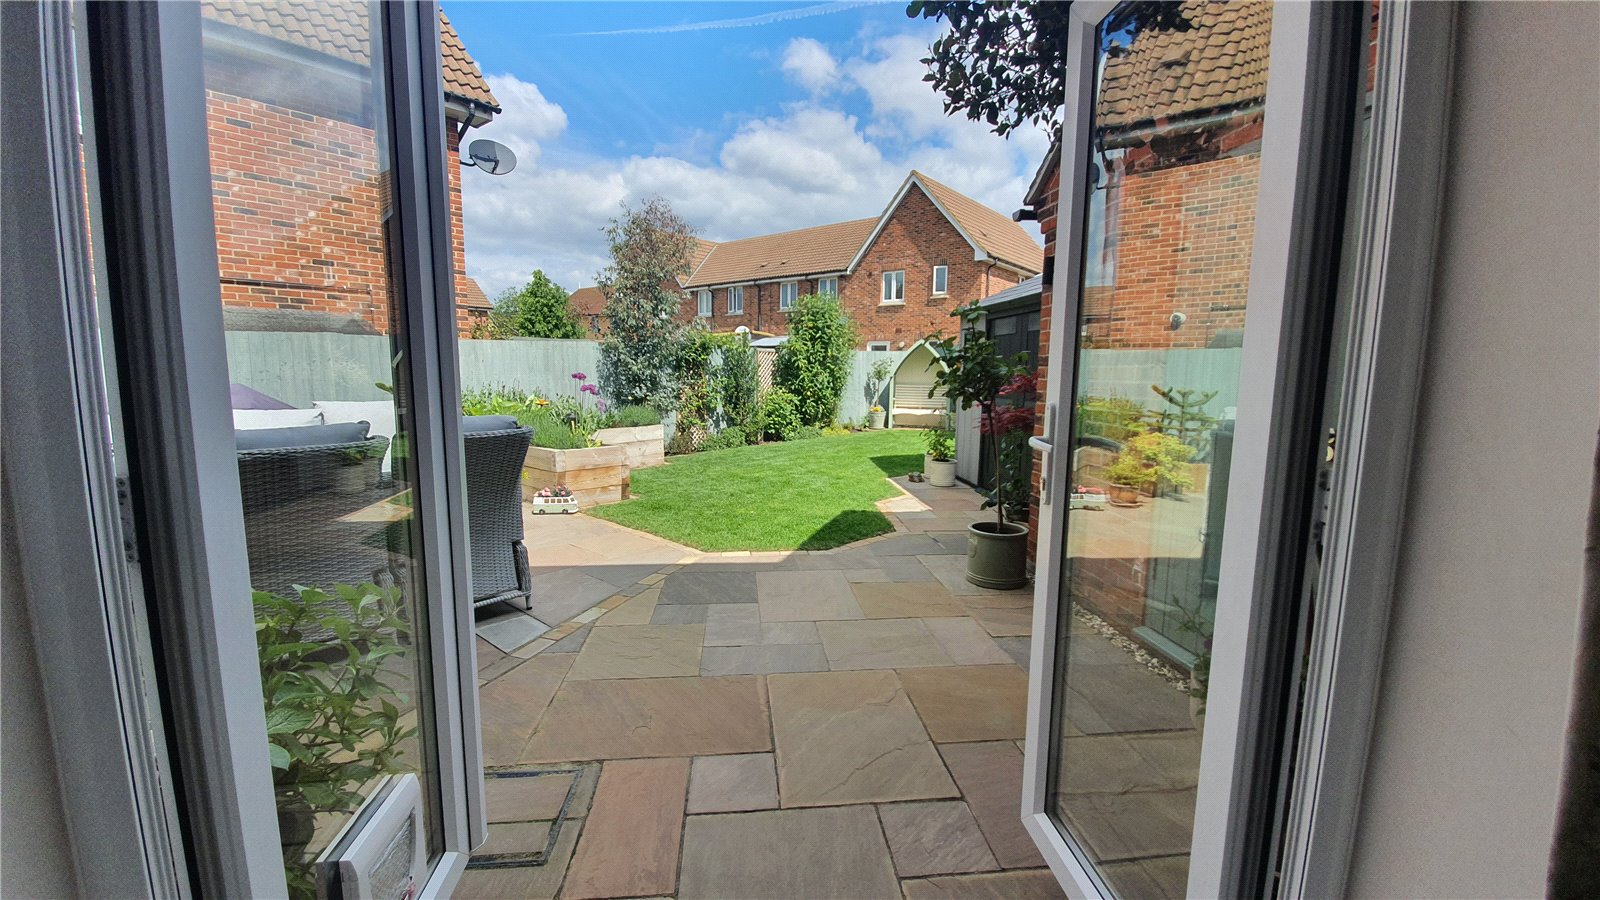 3 bed house for sale in Harvest Drive, St Neots  - Property Image 6